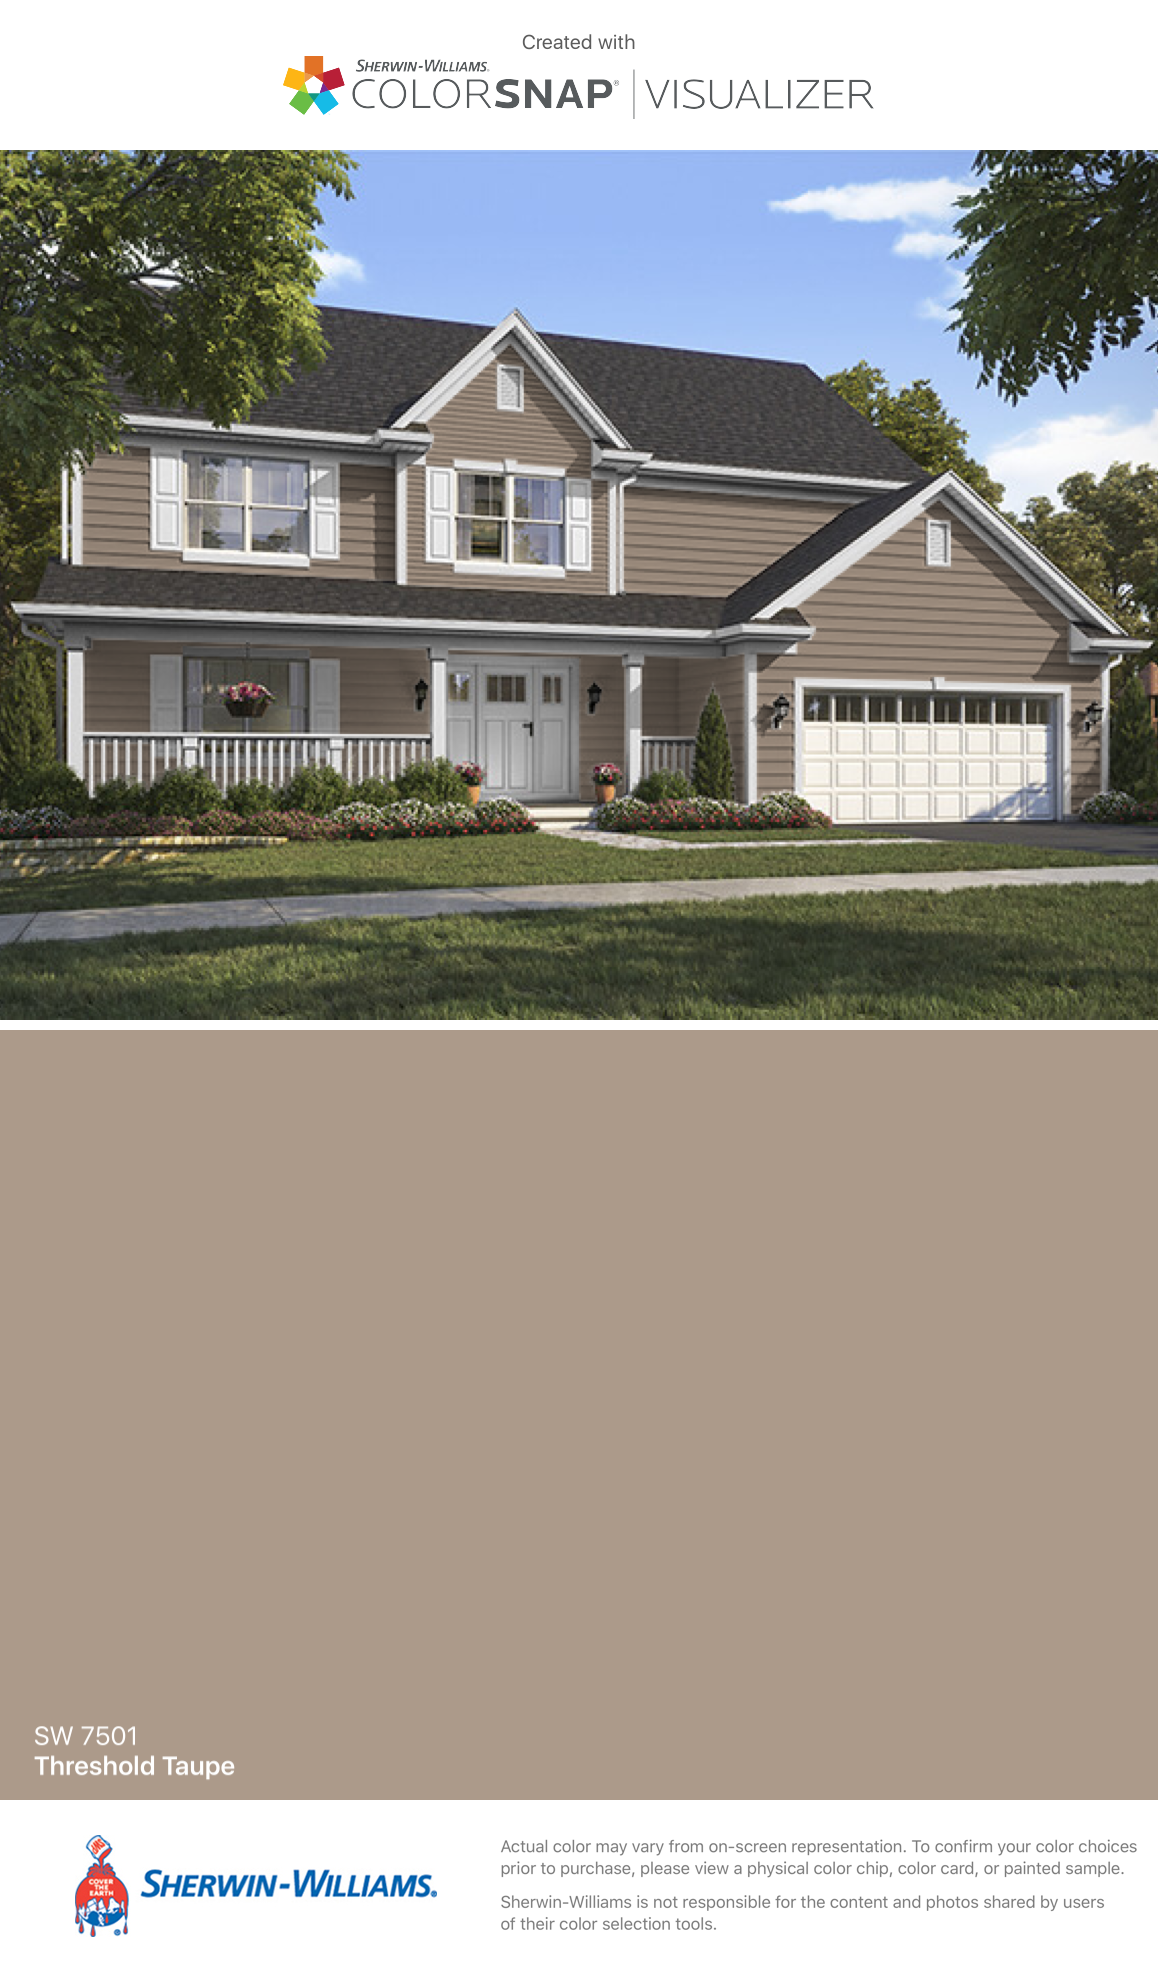 I Found This Color With Colorsnap Visualizer For Iphone By Sherwin Willi Gray House Exterior Sherwin Williams Exterior House Colors Grey Exterior House Colors